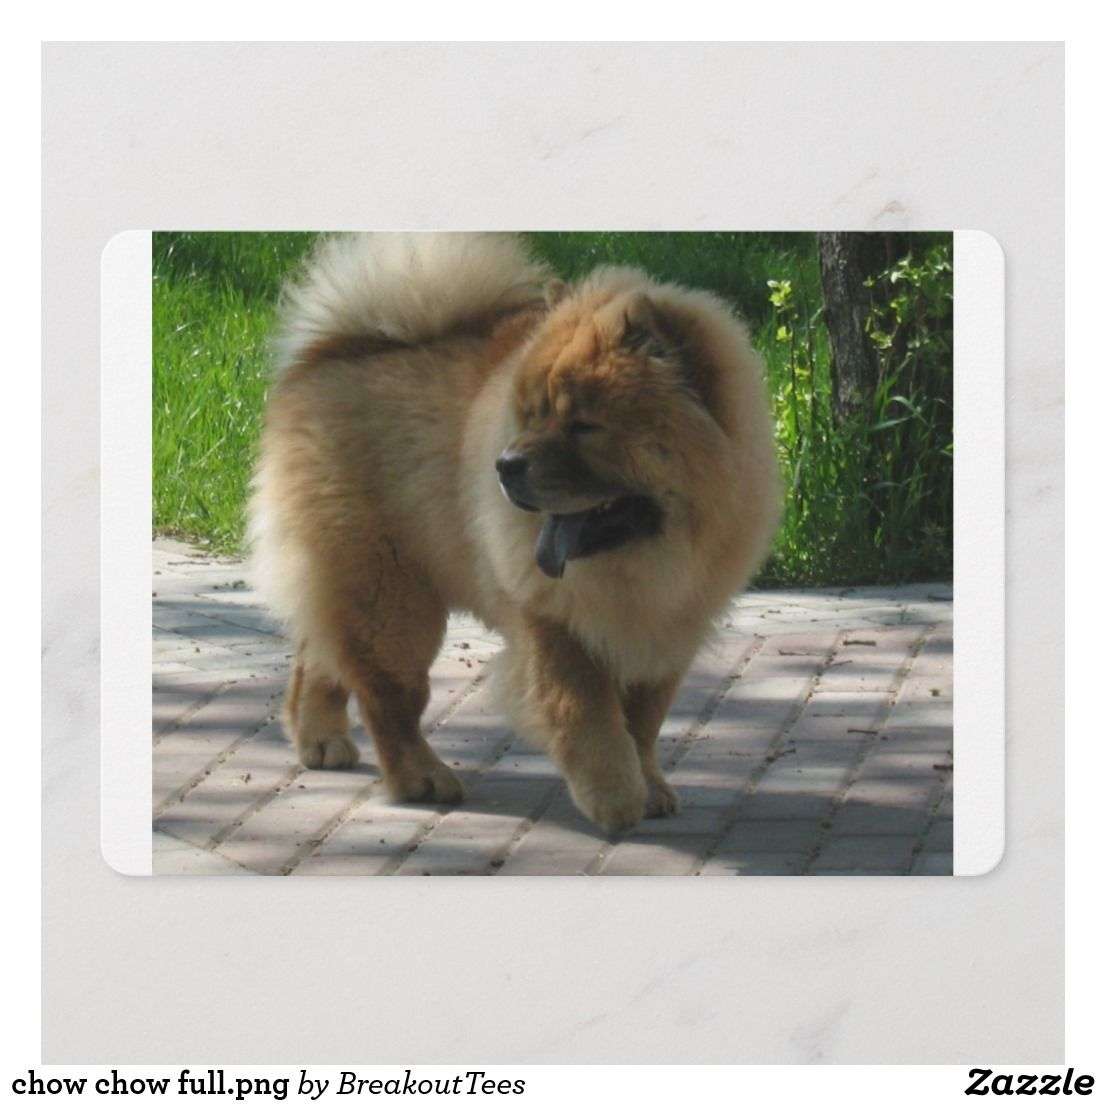 Chow Chow Full Png Zazzle Com Chow Chow Fluffy Dogs Dog Breeds